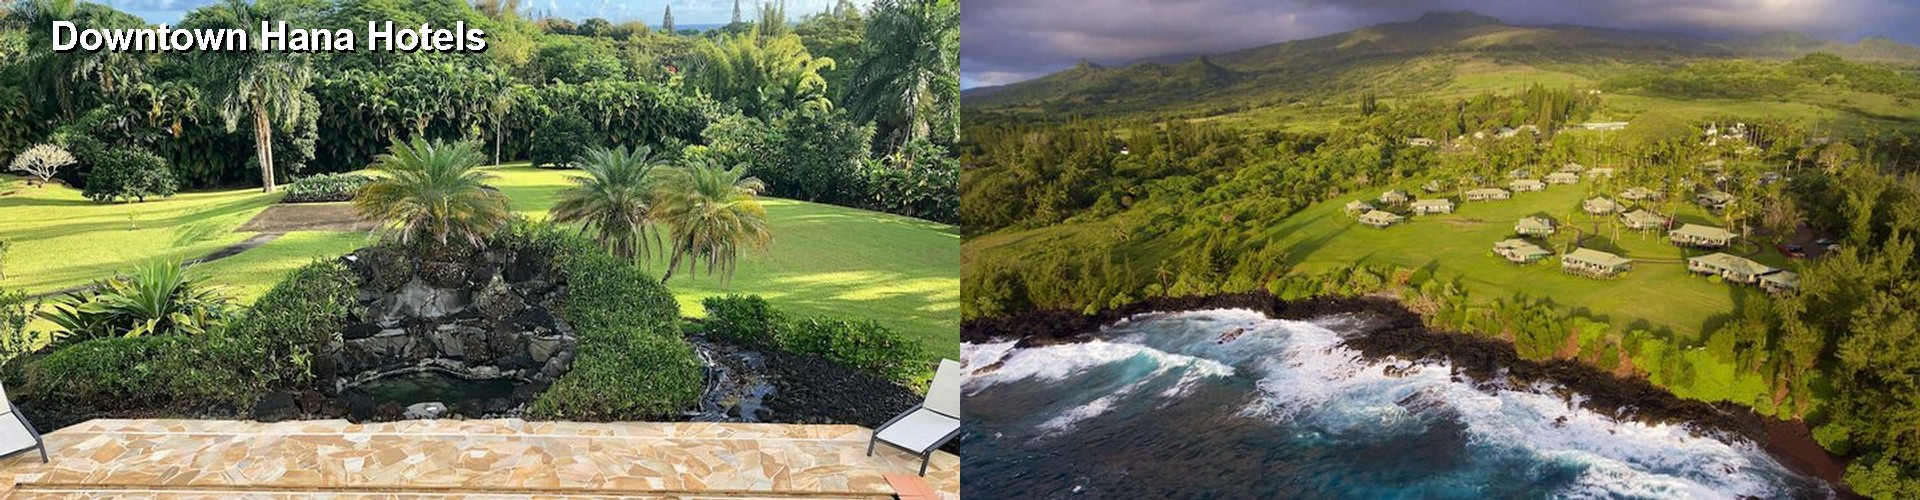 5 Best Hotels near Downtown Hana